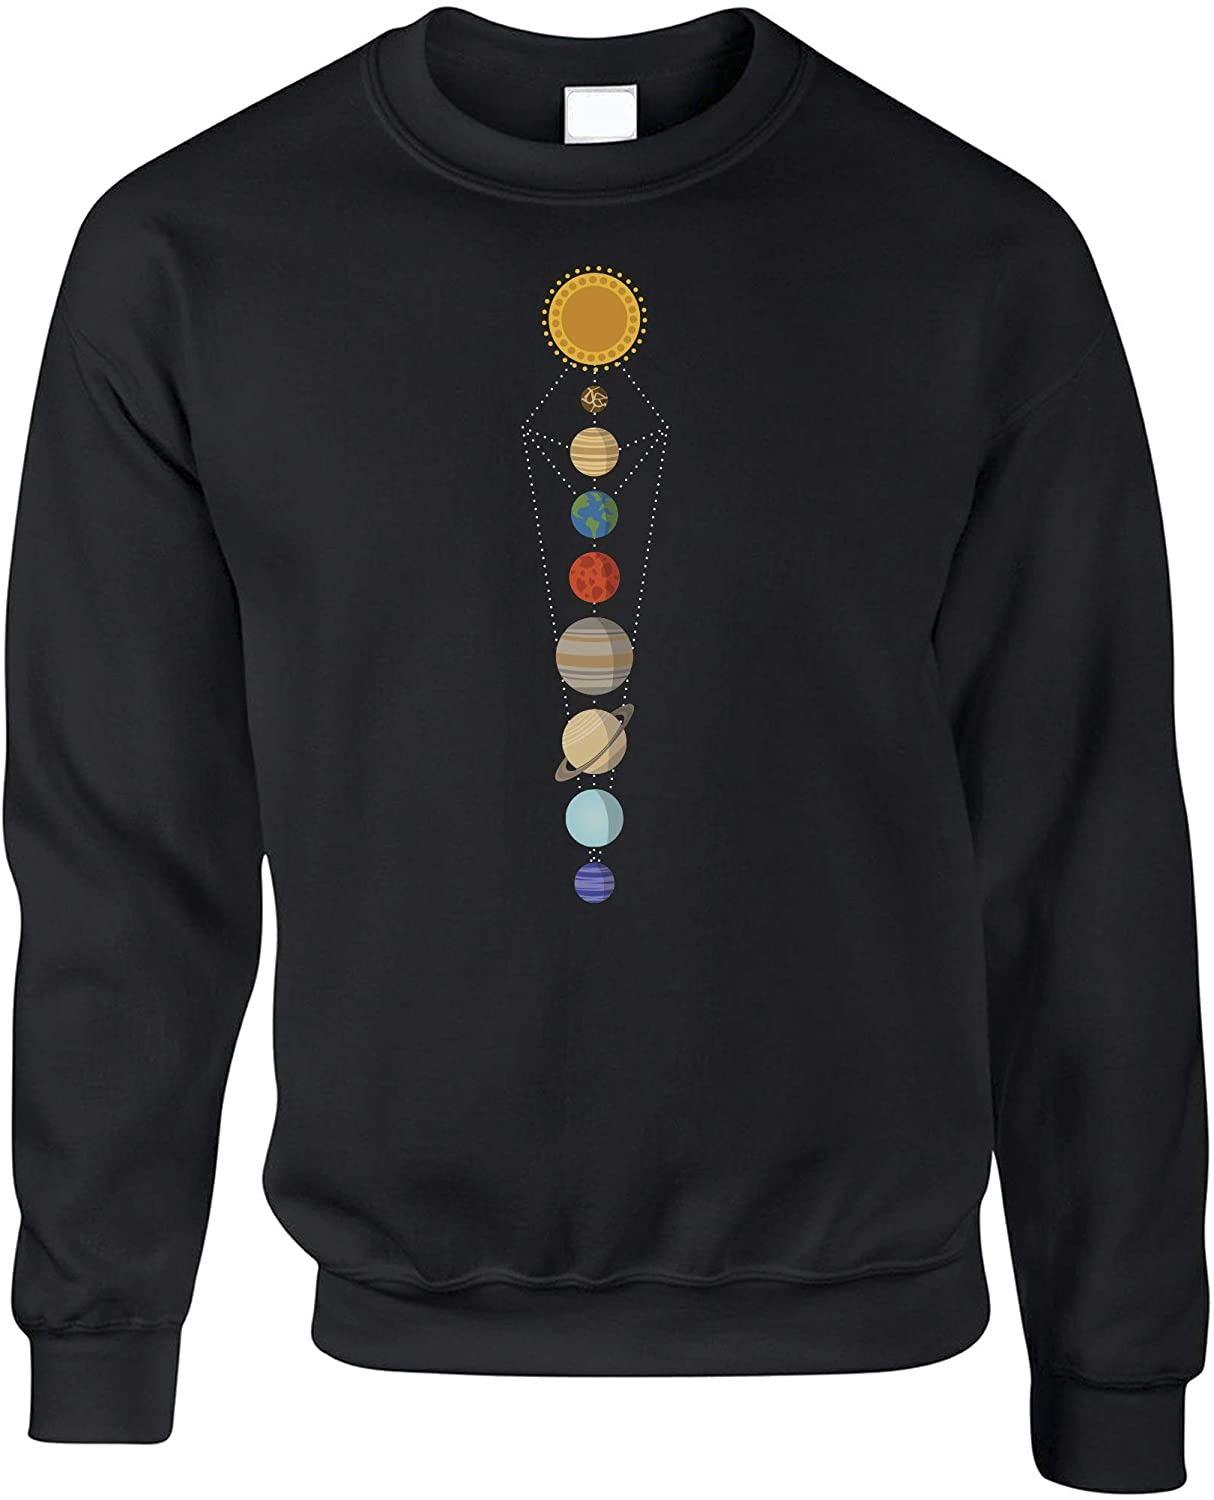 Cool Nerdy Jumper Geometric Solar System Space Art